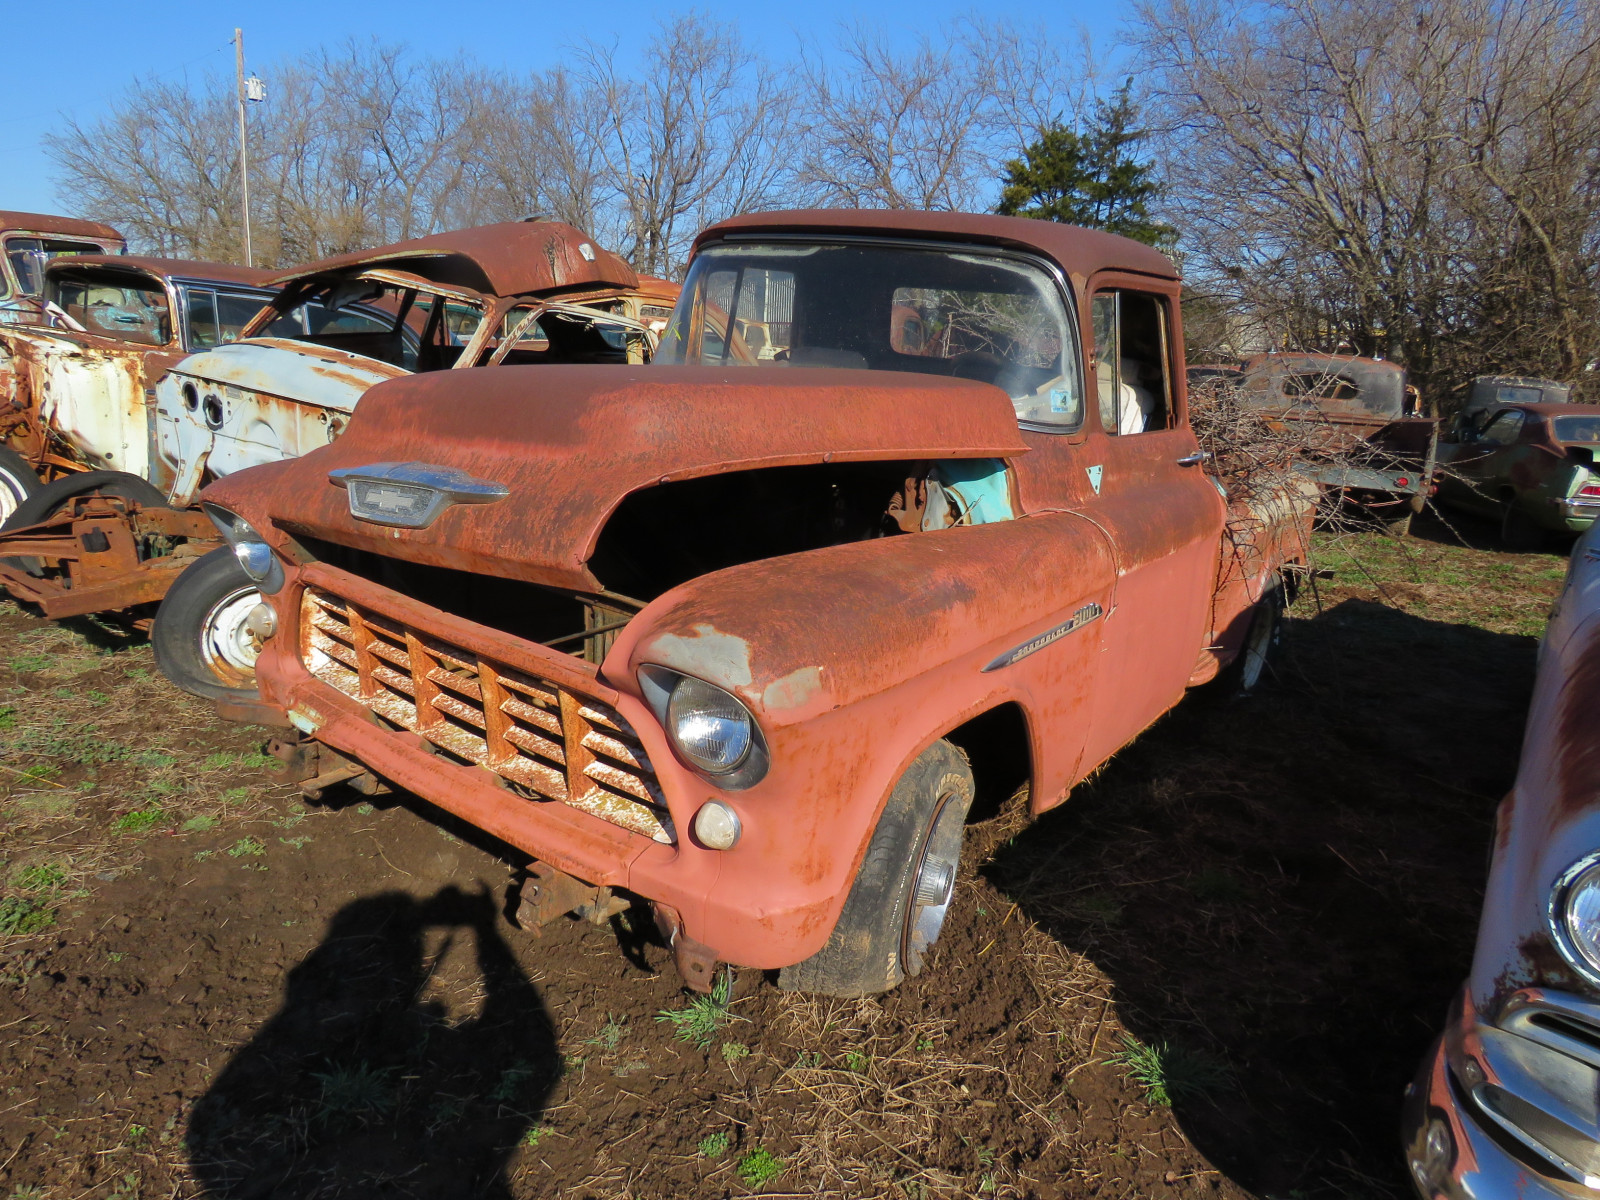 1955 Chevrolet Stepside Pickup - Image 2